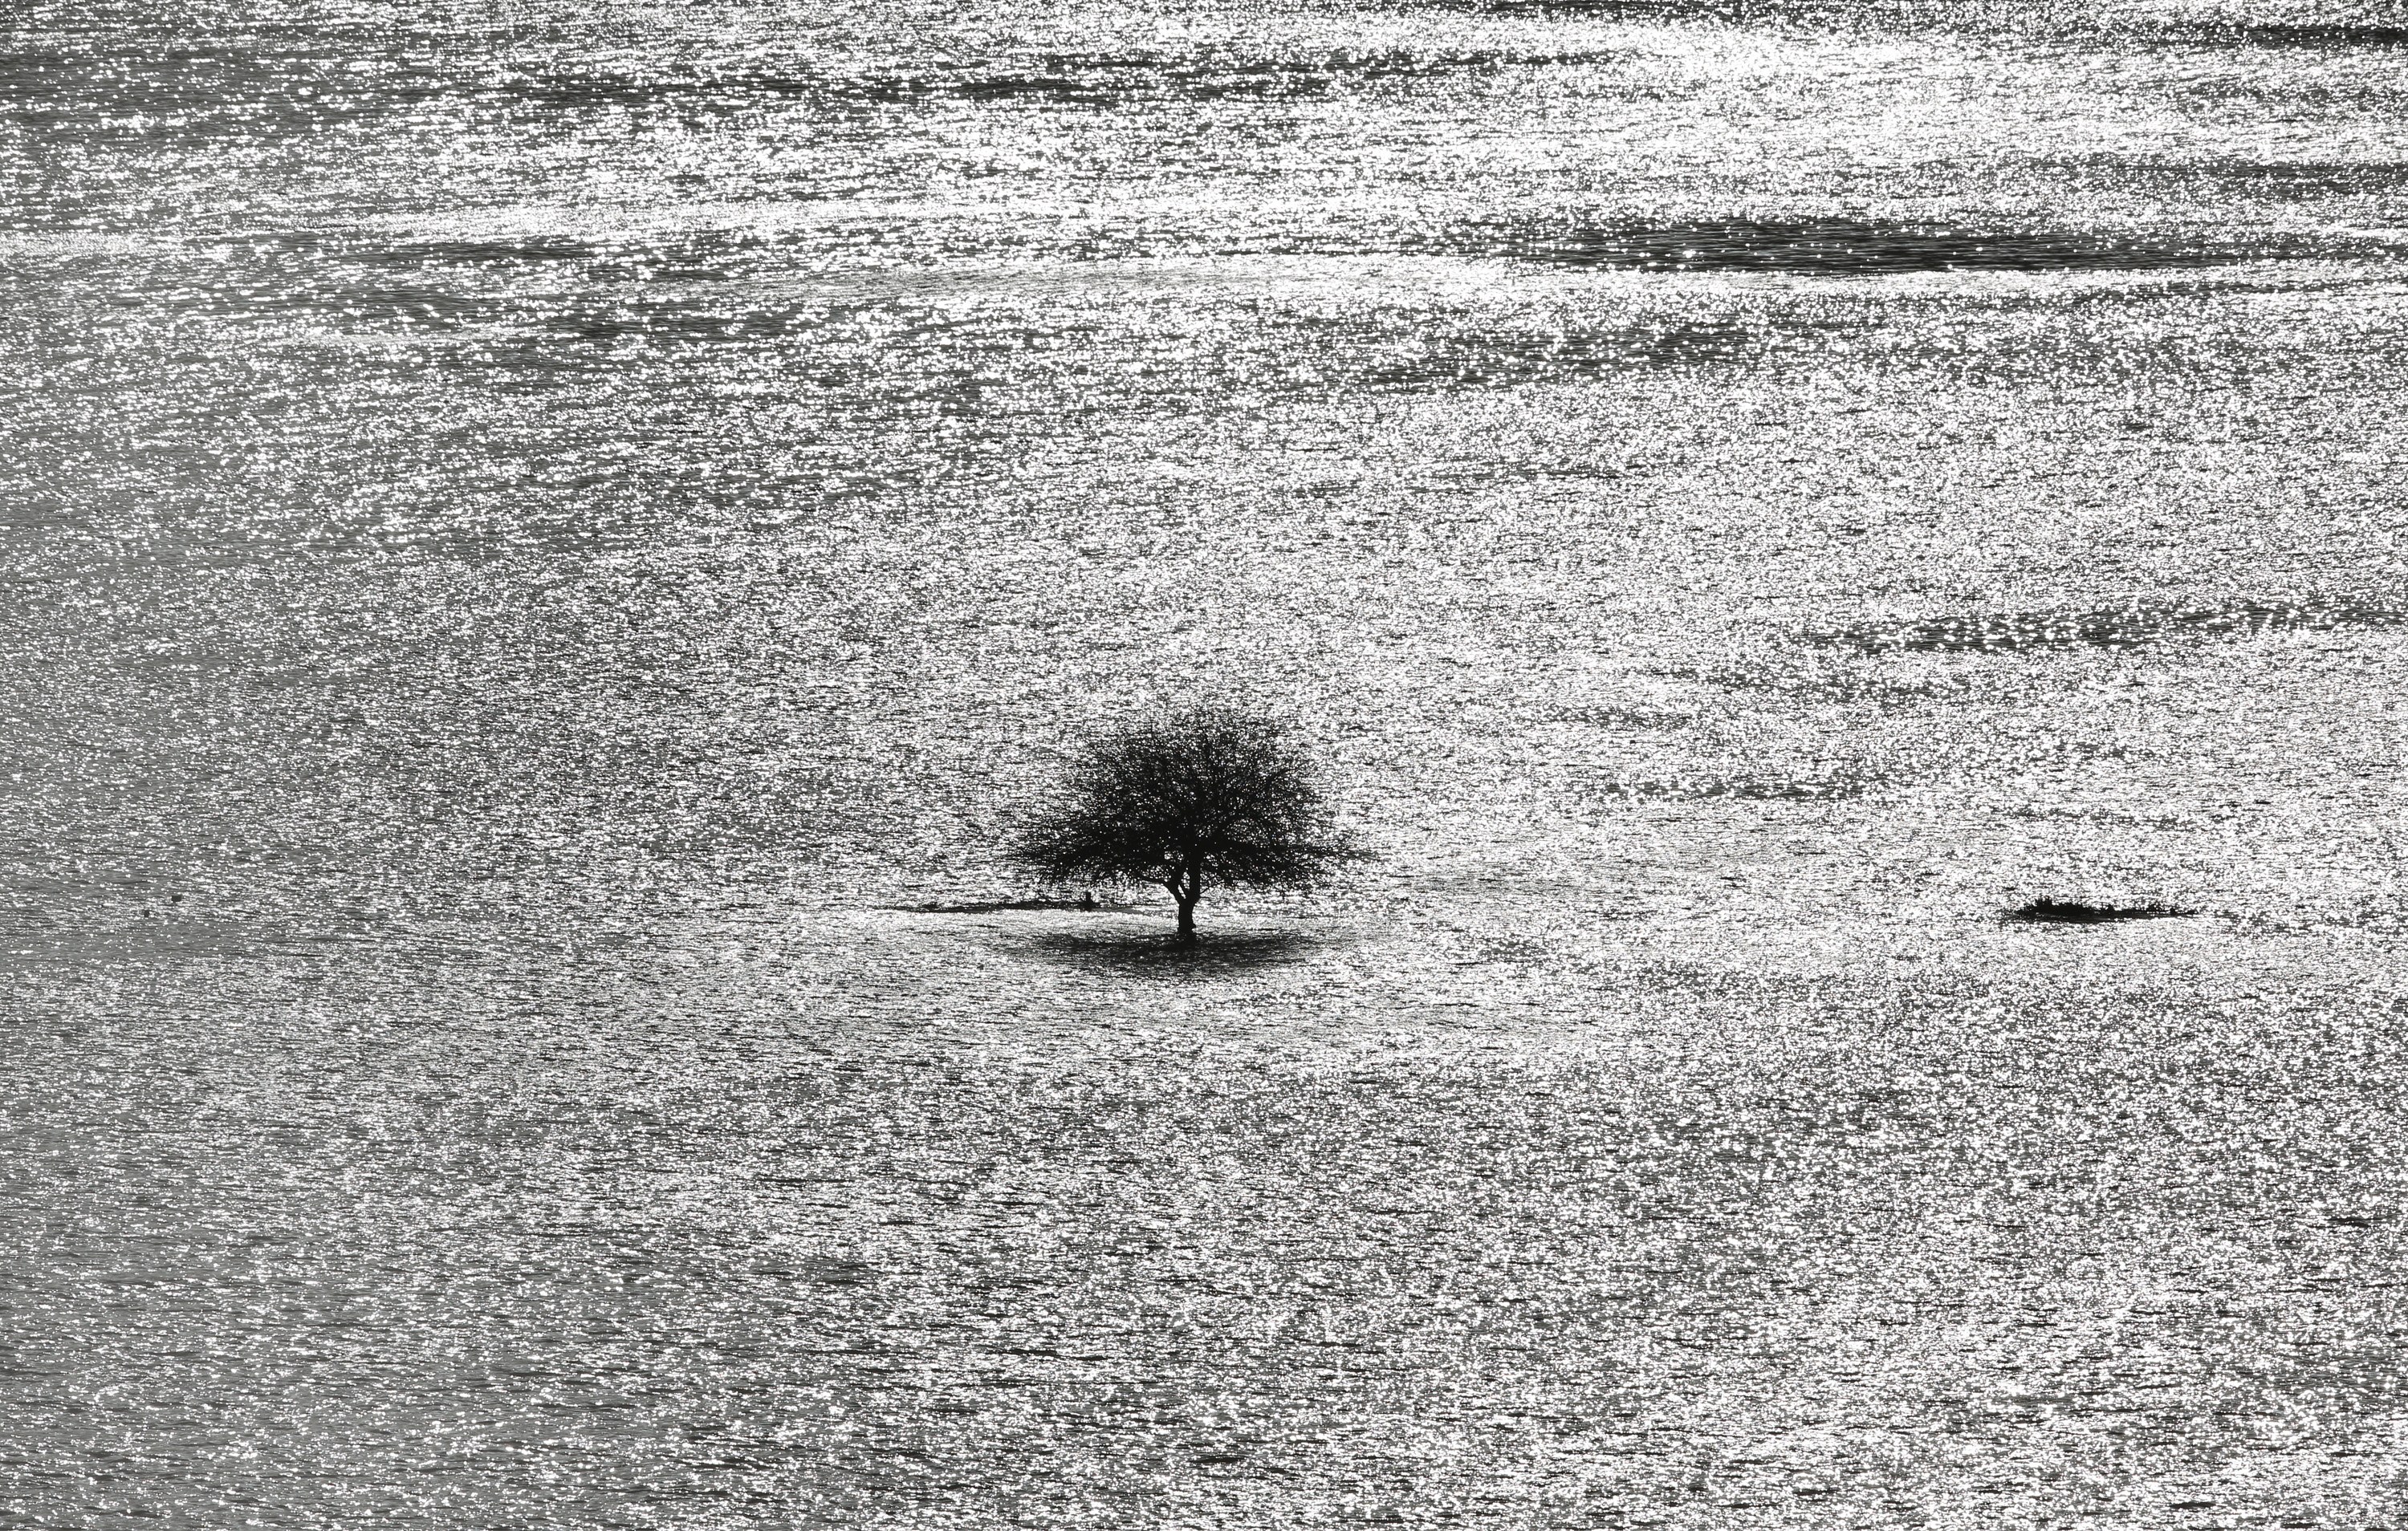 A lone tree stands in a snowy field in Hovel, England, Jan. 6, 2014.